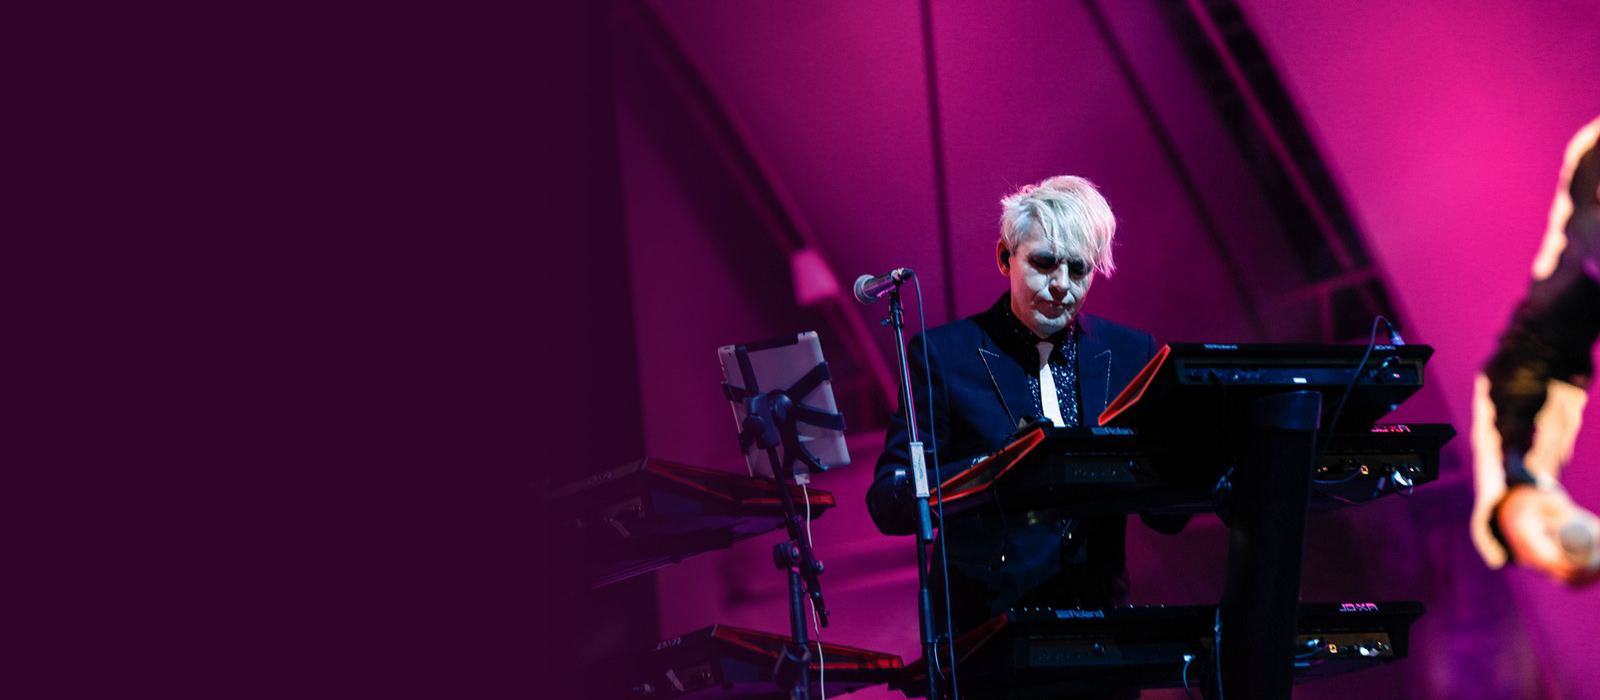 Nick Rhodes Synth Rig